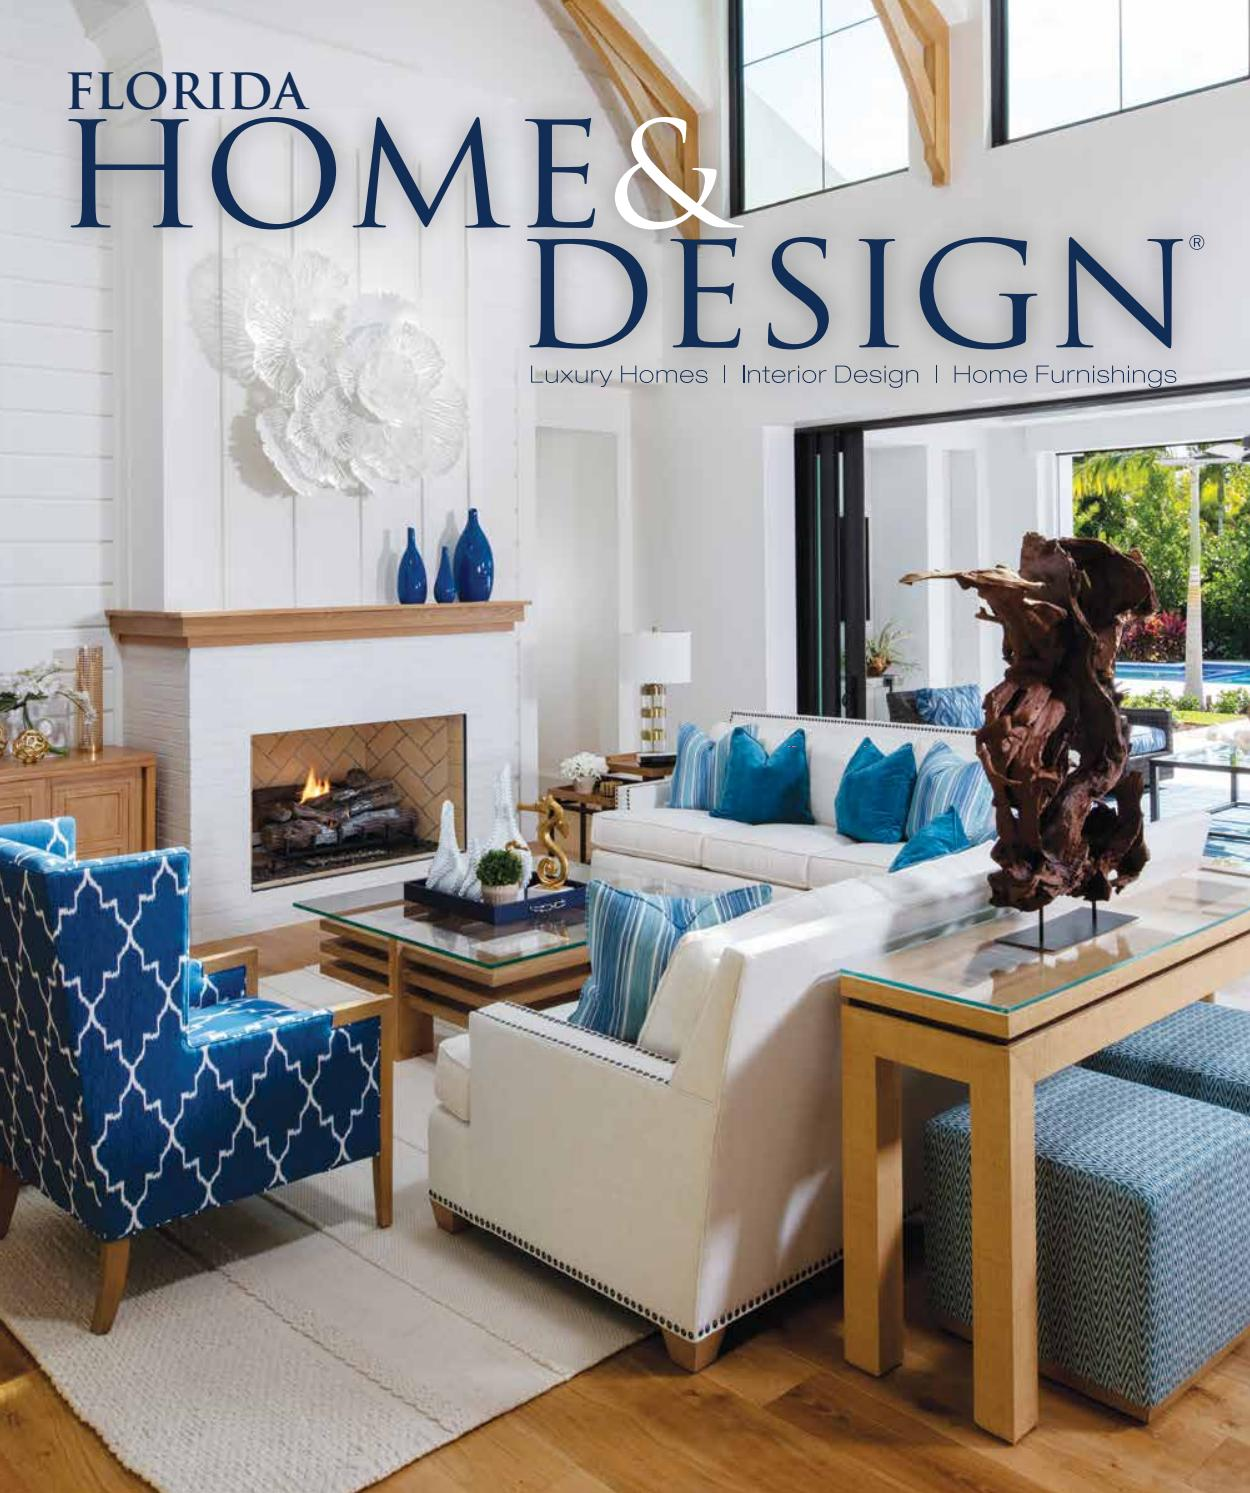 Home Design Naples National Oct 2019 By Jennifer Evans Issuu